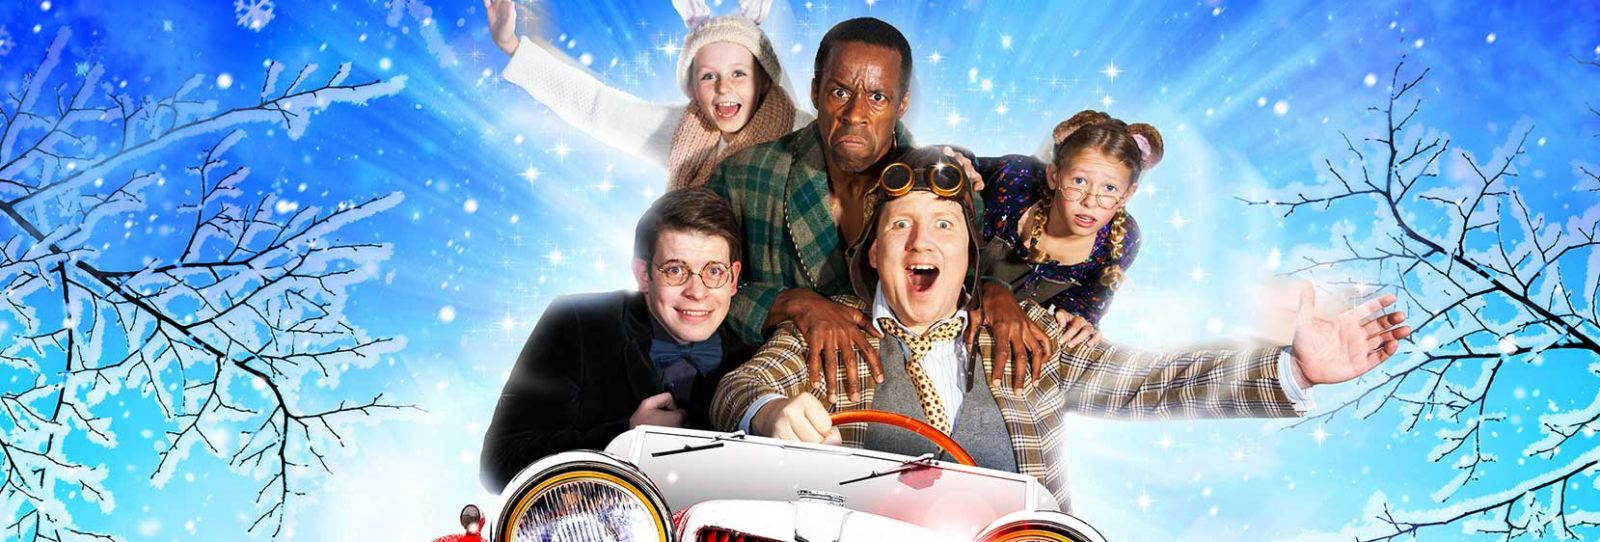 Casting announced for The Wind in the Willows